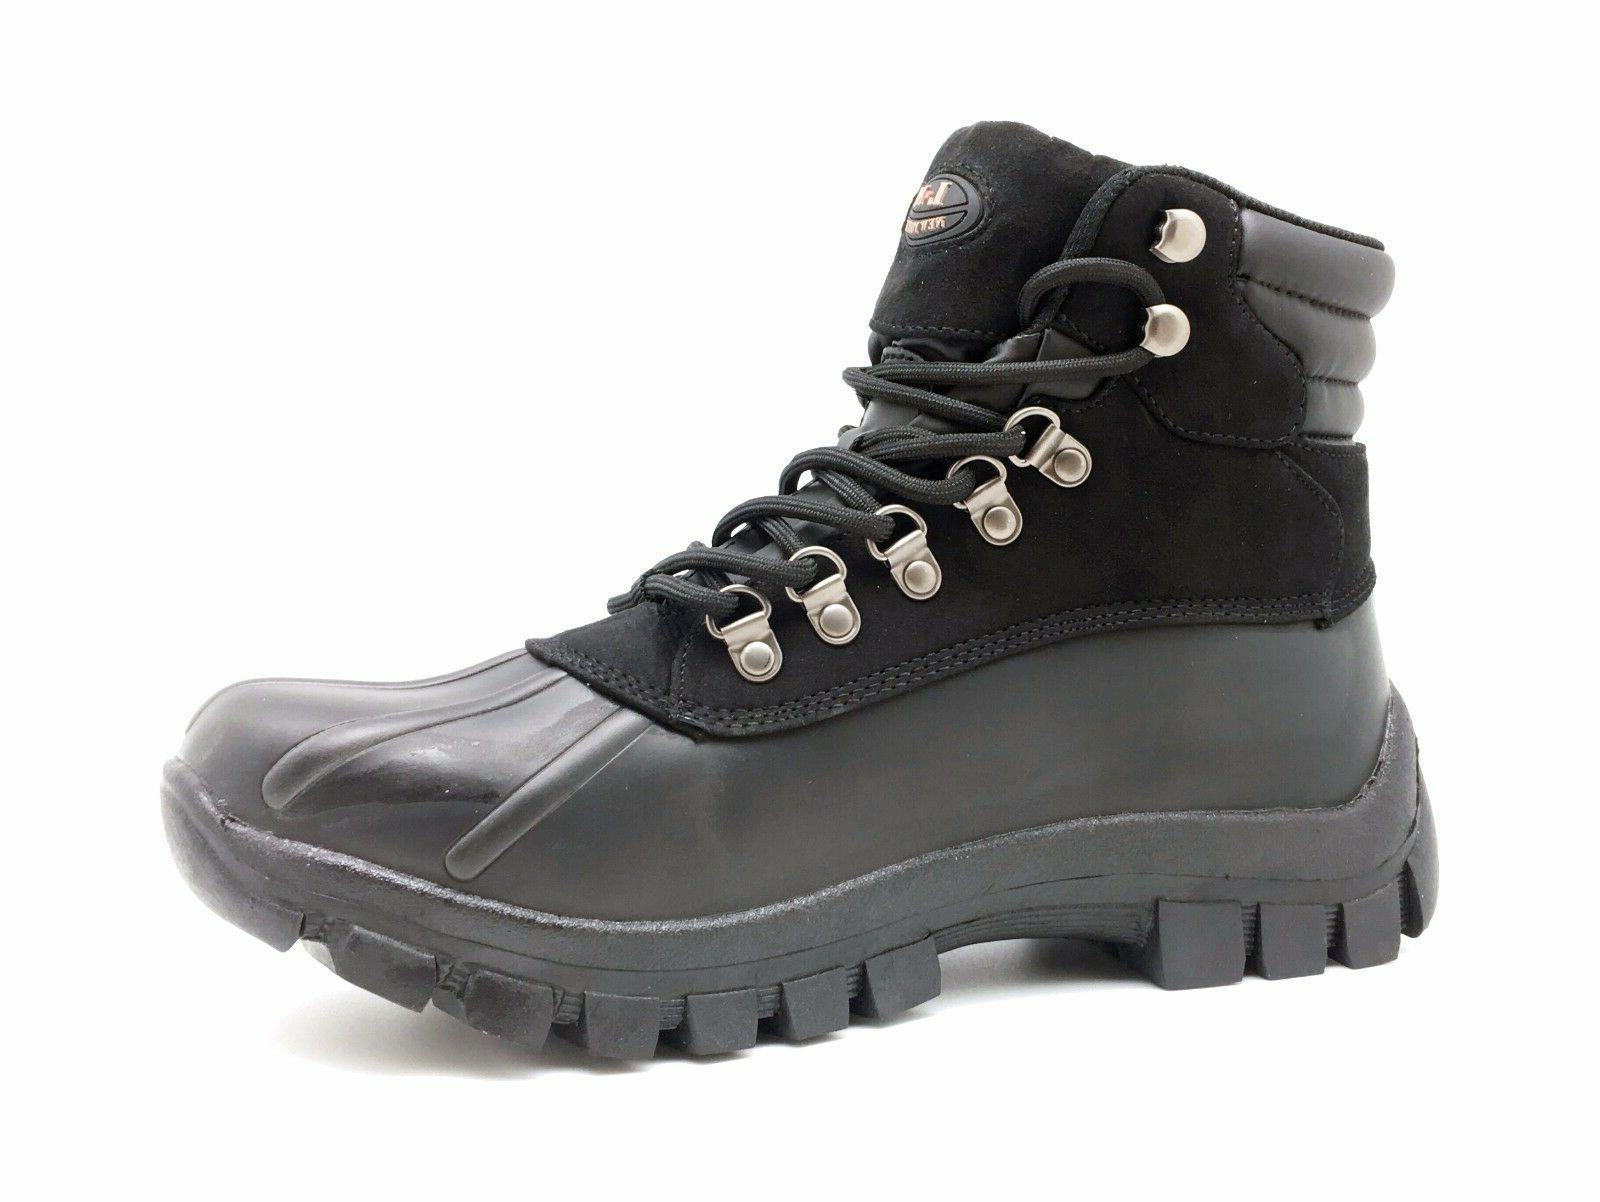 New Winter Men's Work Boots Shoes Leather Lace Waterproof 2017